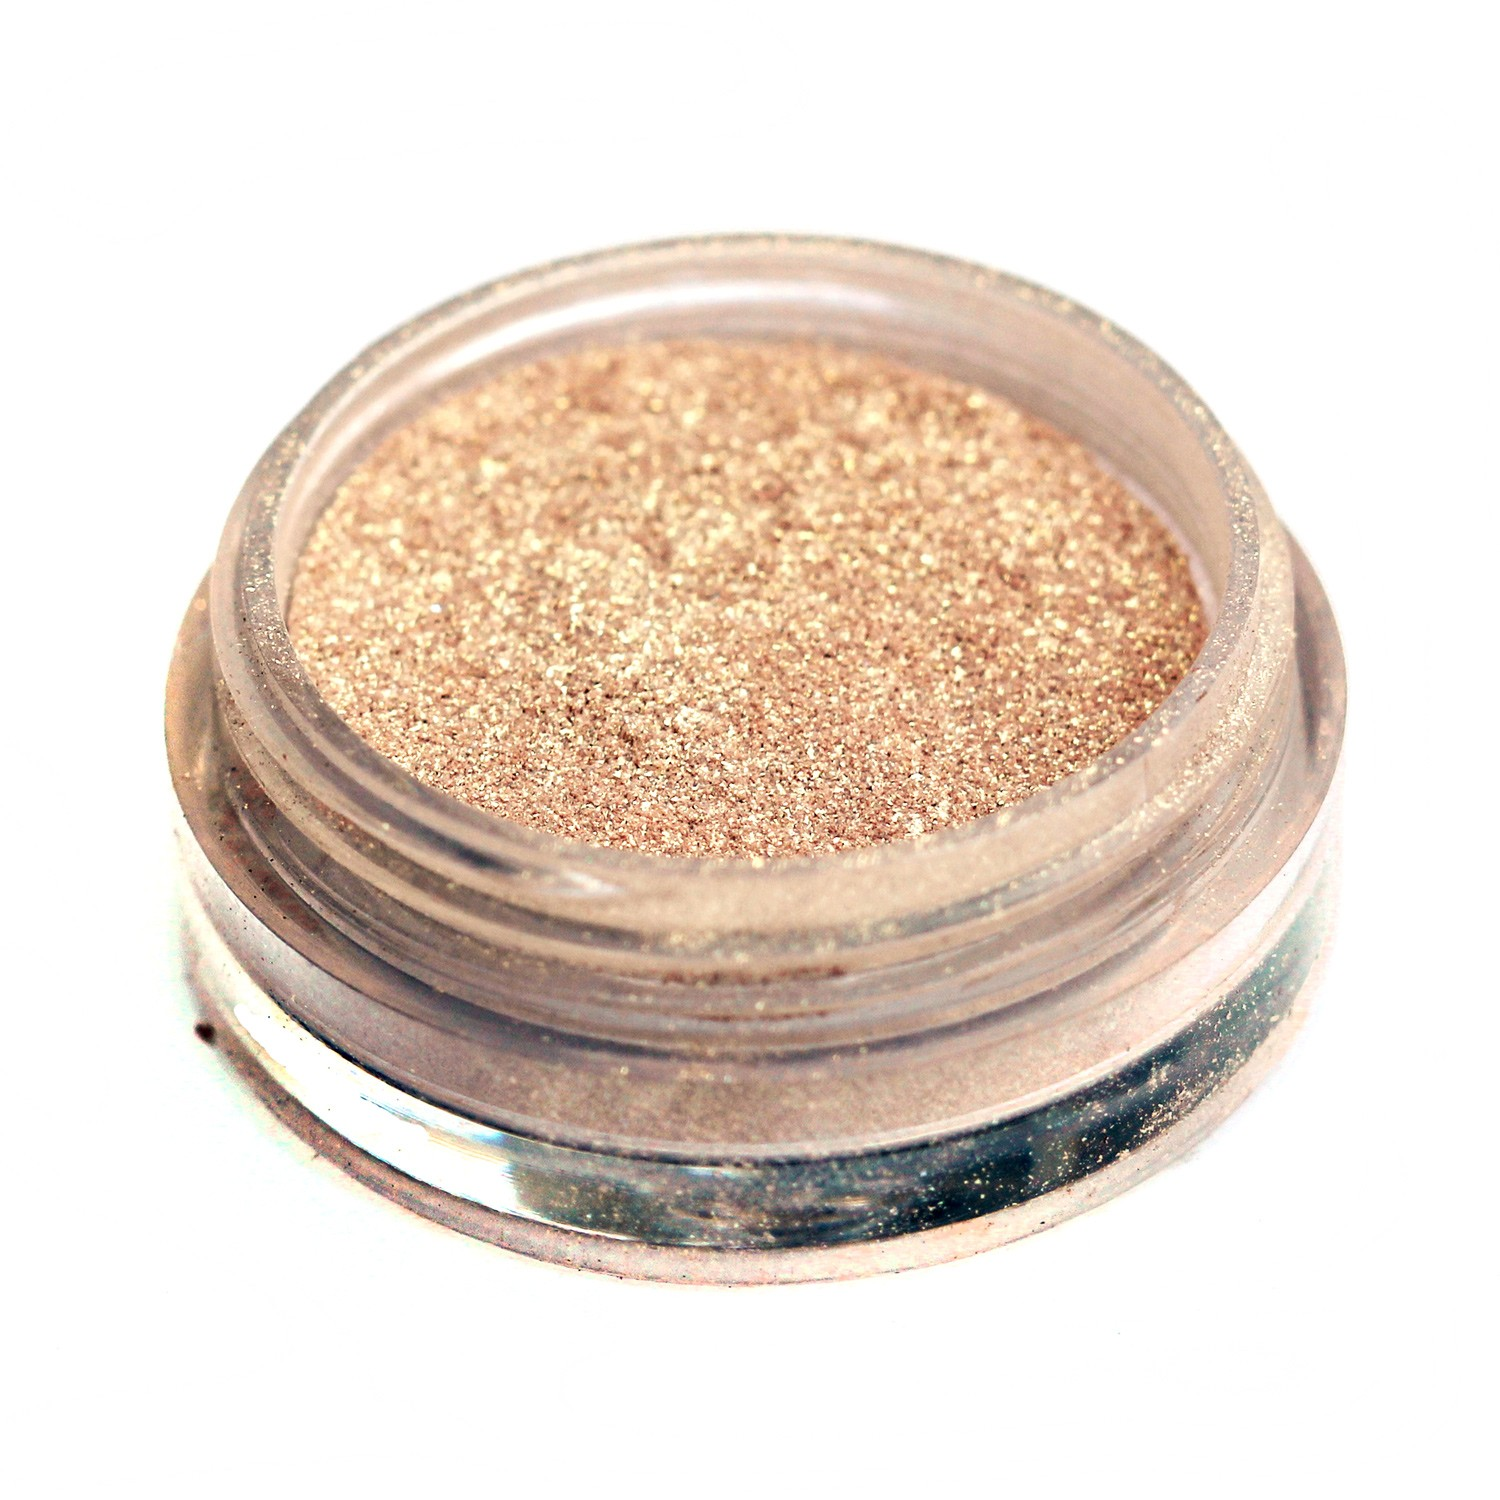 Makeup Geek Pigment - New Year's Eve, $6.99 @makeupgeek.com